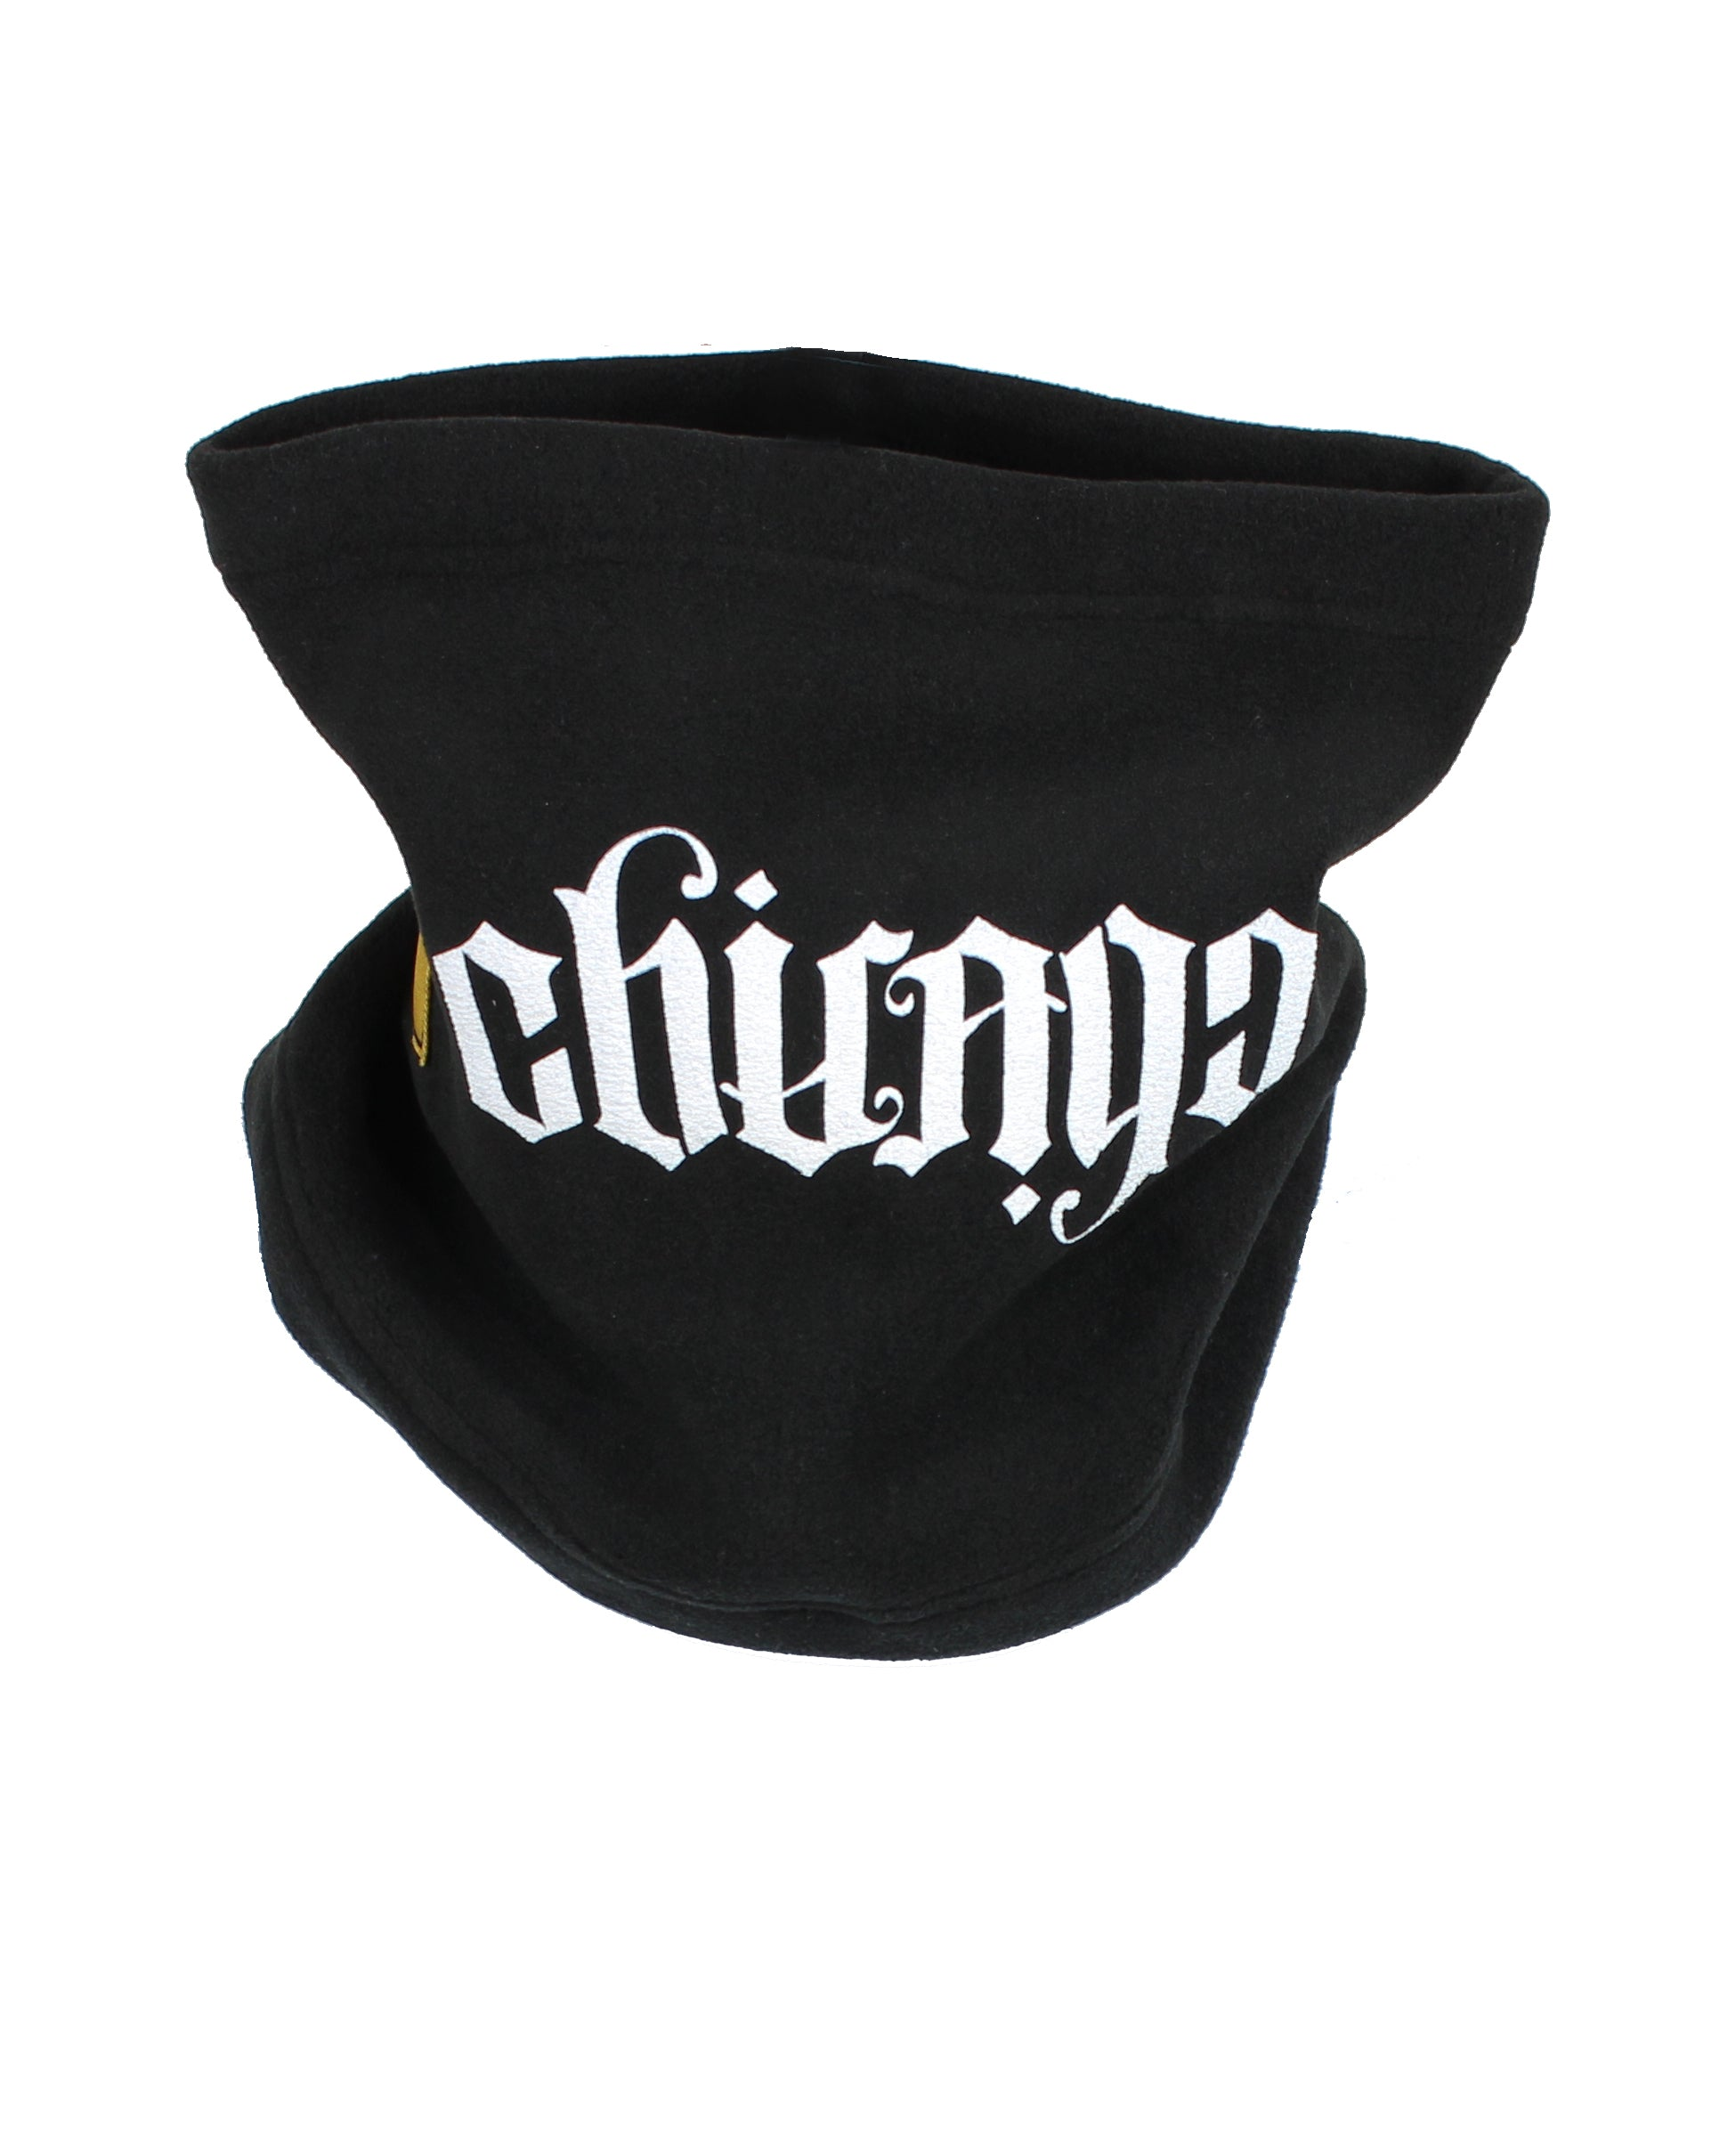 Neck Warmer (Black)